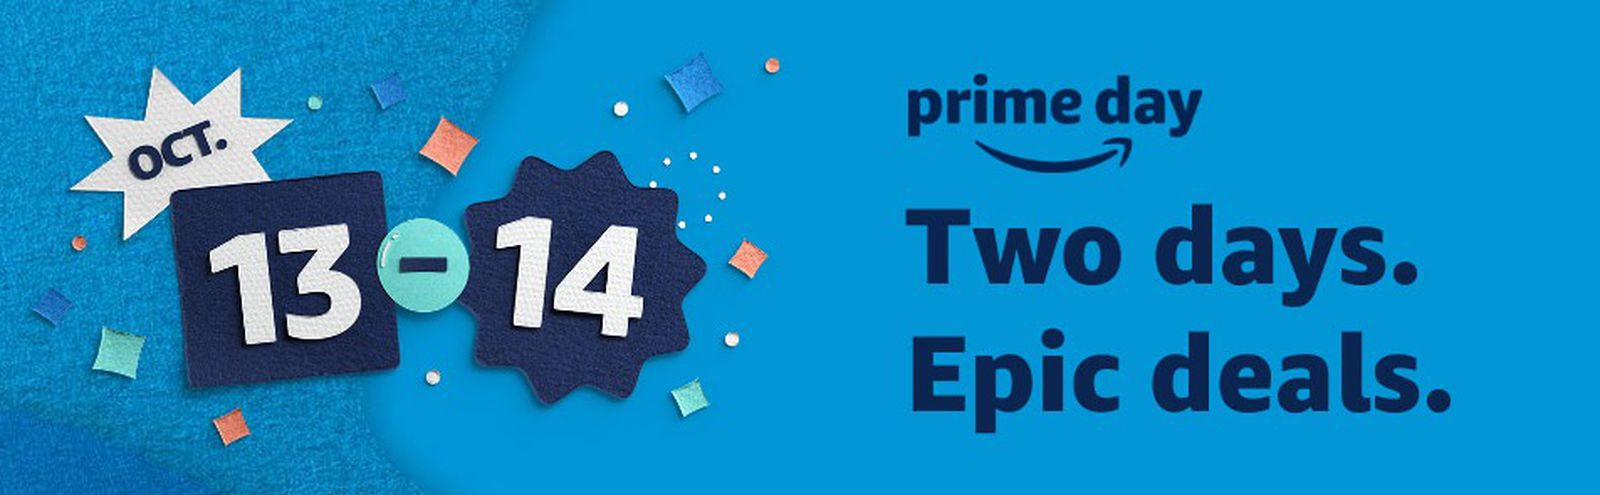 Amazon's 48-Hour 'Prime Day' Event Takes Place October 13 and 14 - MacRumors